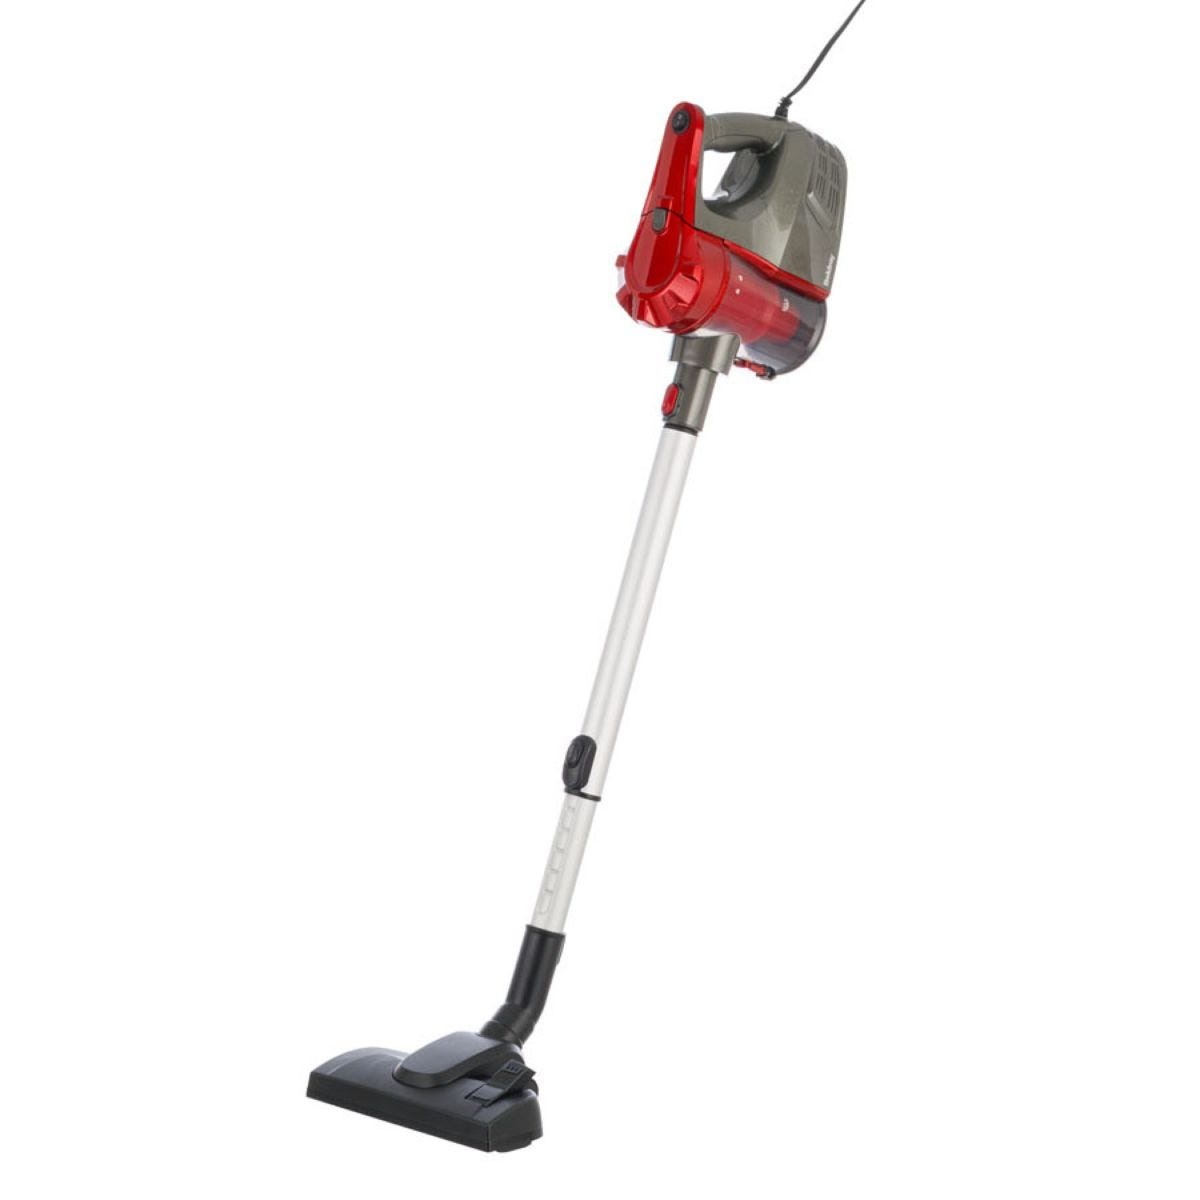 Beldray BEL0769 Quick Vac Lite Stick Vacuum Cleaner - Red